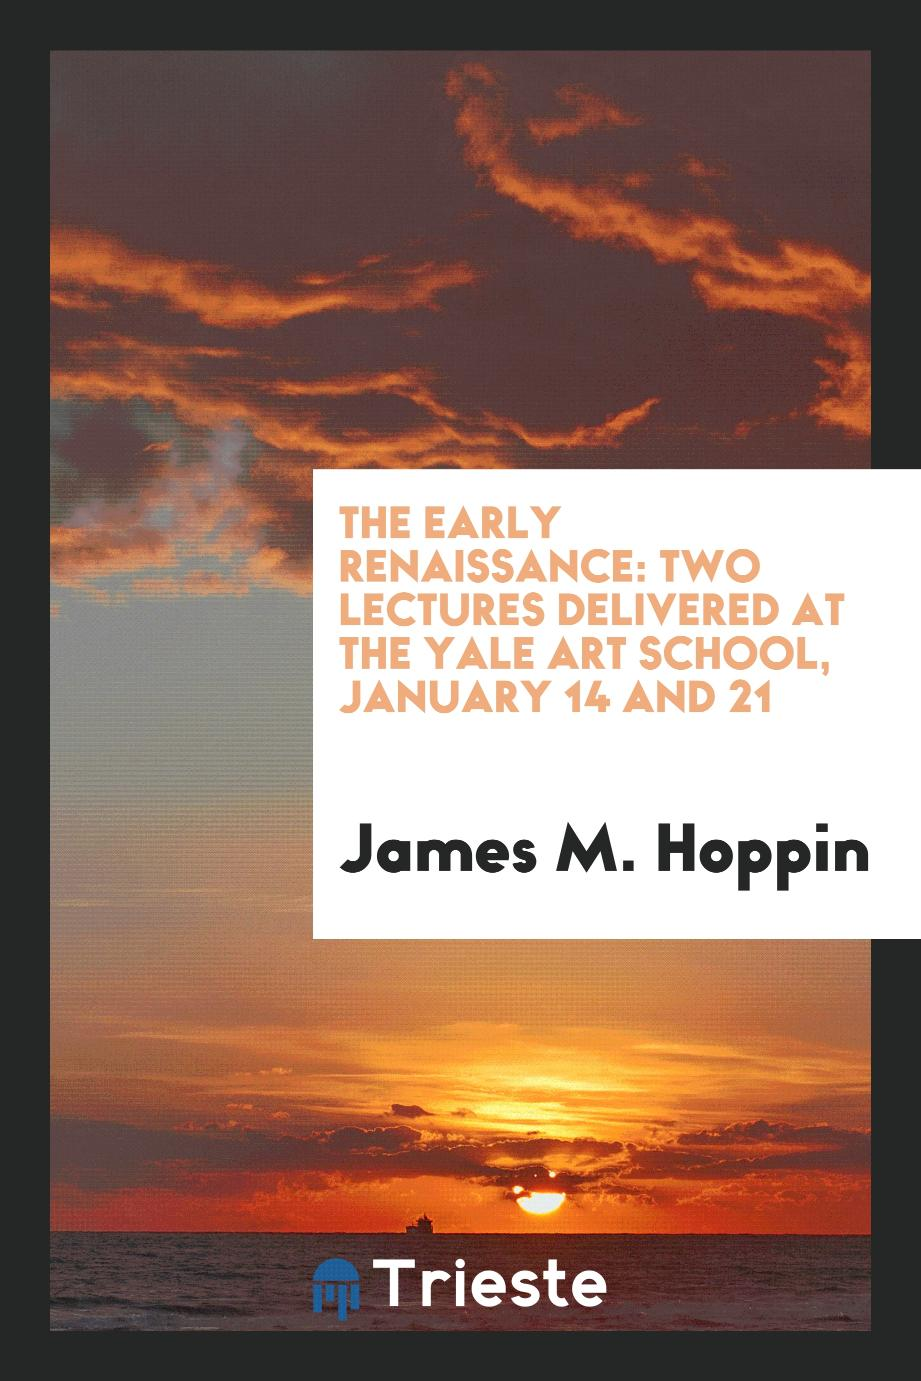 The early renaissance: two lectures delivered at the Yale Art School, January 14 and 21